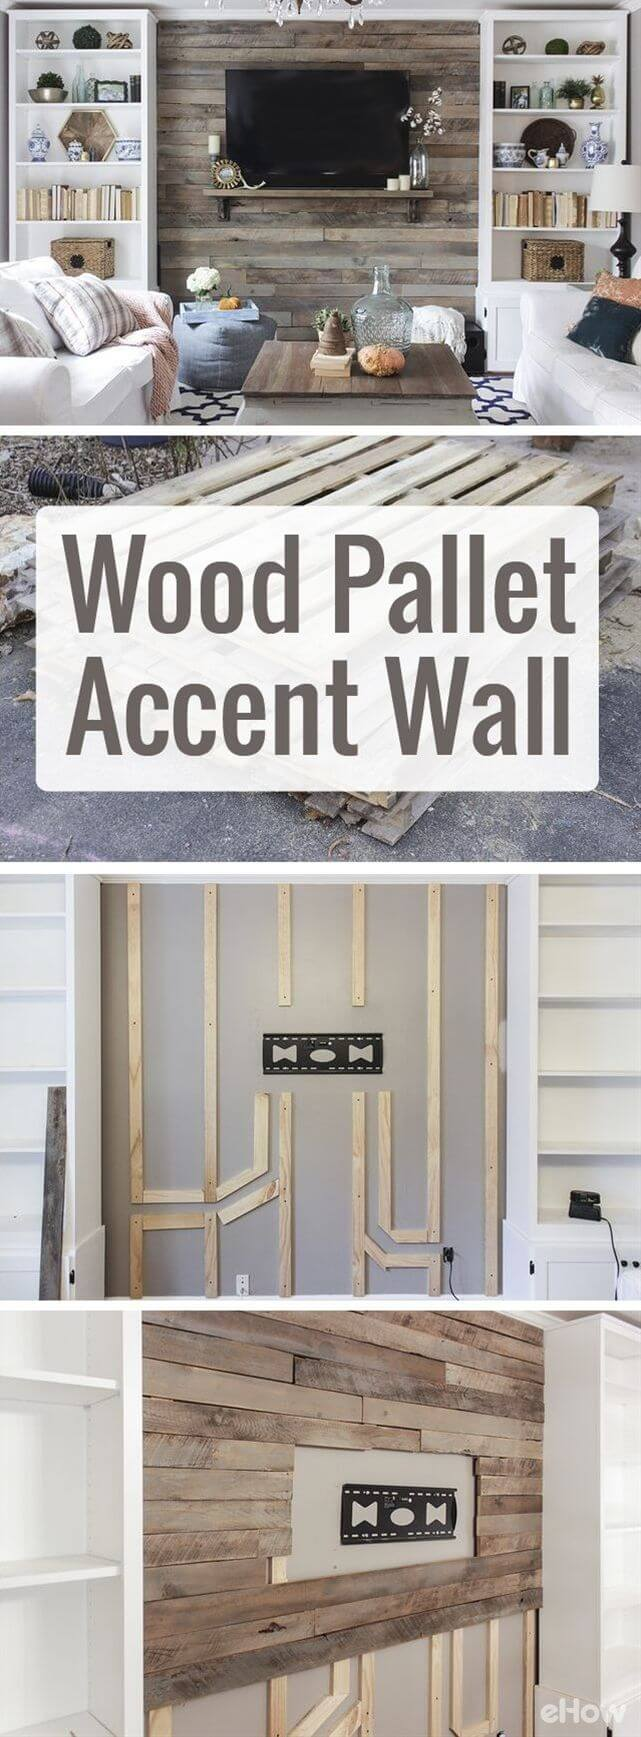 Floor to Ceiling Wood Pallet Paneling